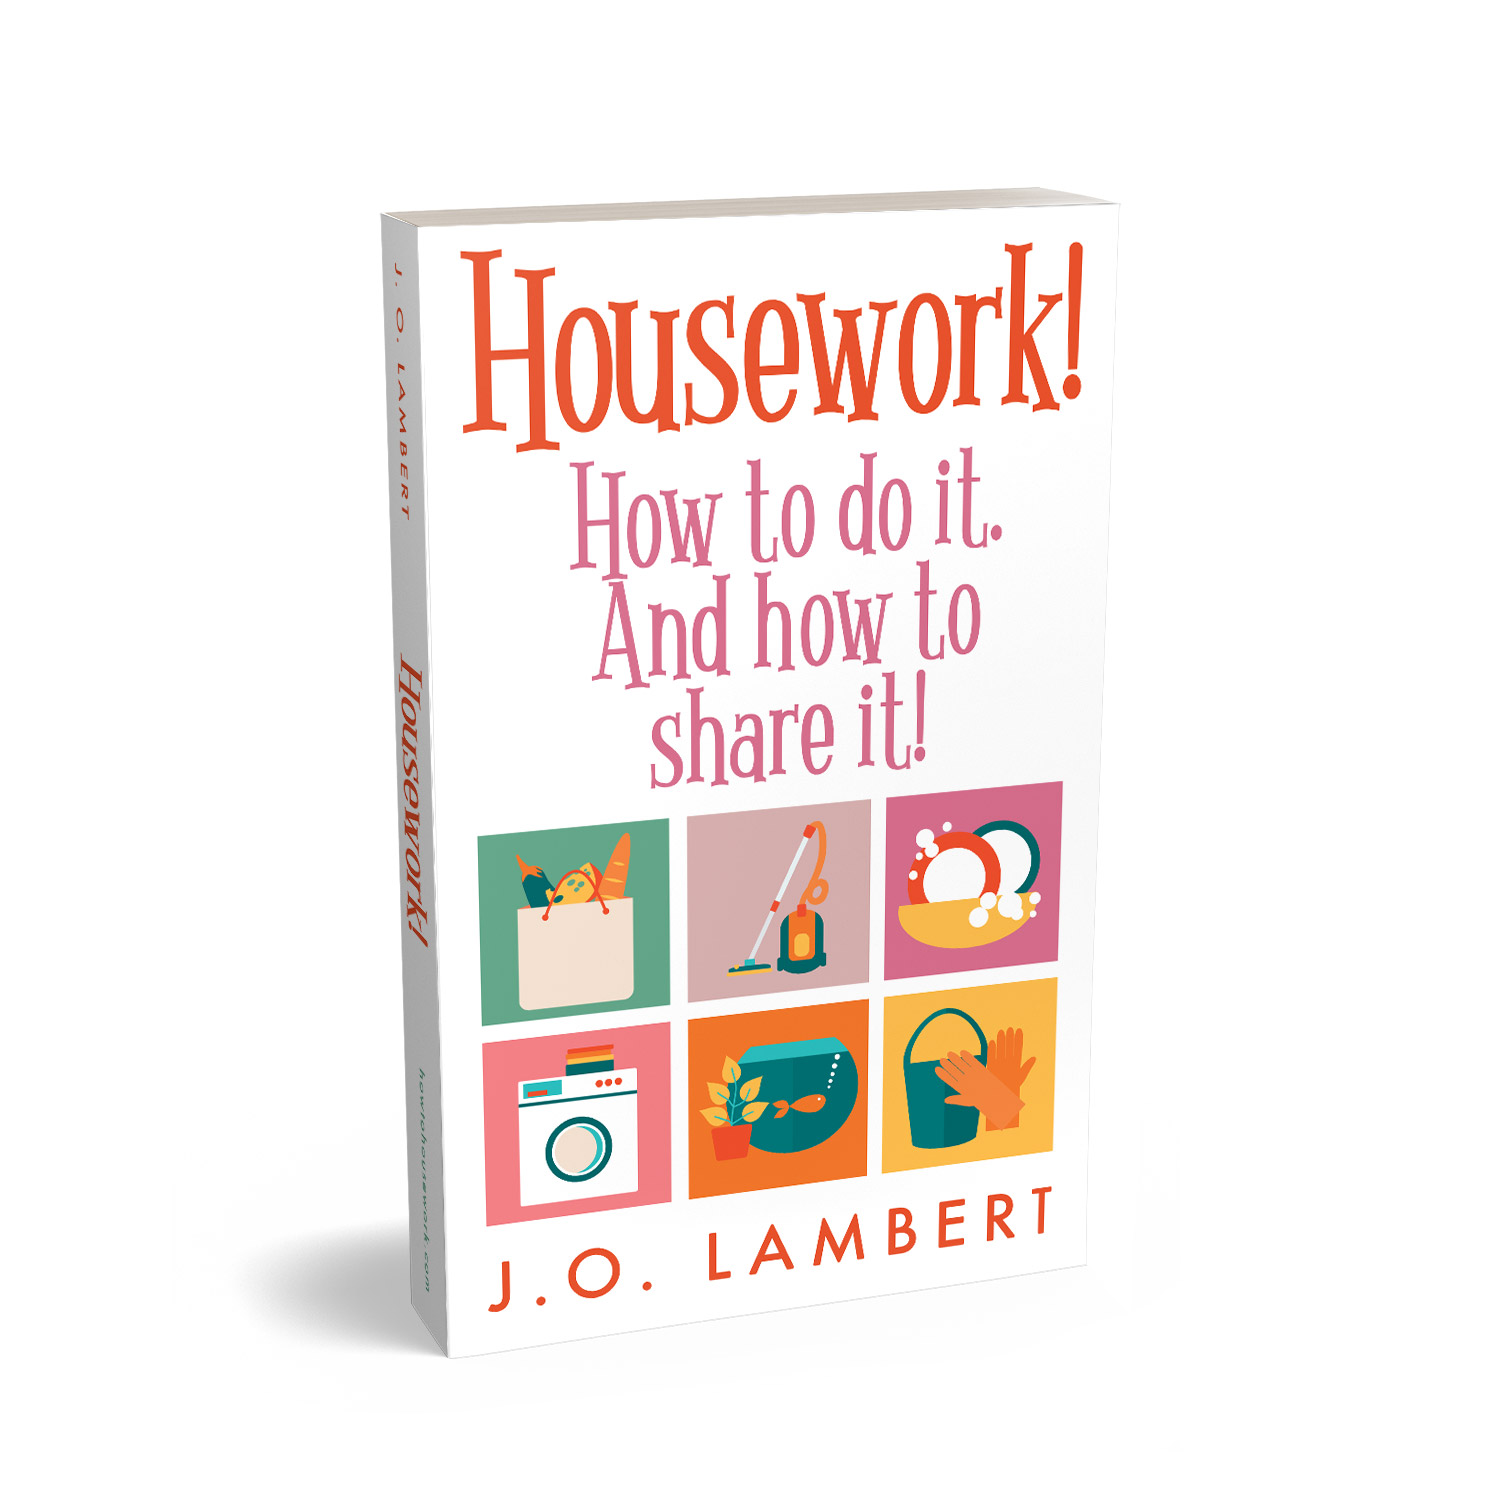 'Housework' is a compact self-help guide to safely looking after your home. The author is J. O. Lambert. The book cover and interior design is by Mark Thomas. To learn more about what Mark could do for your book, please visit coverness.com.